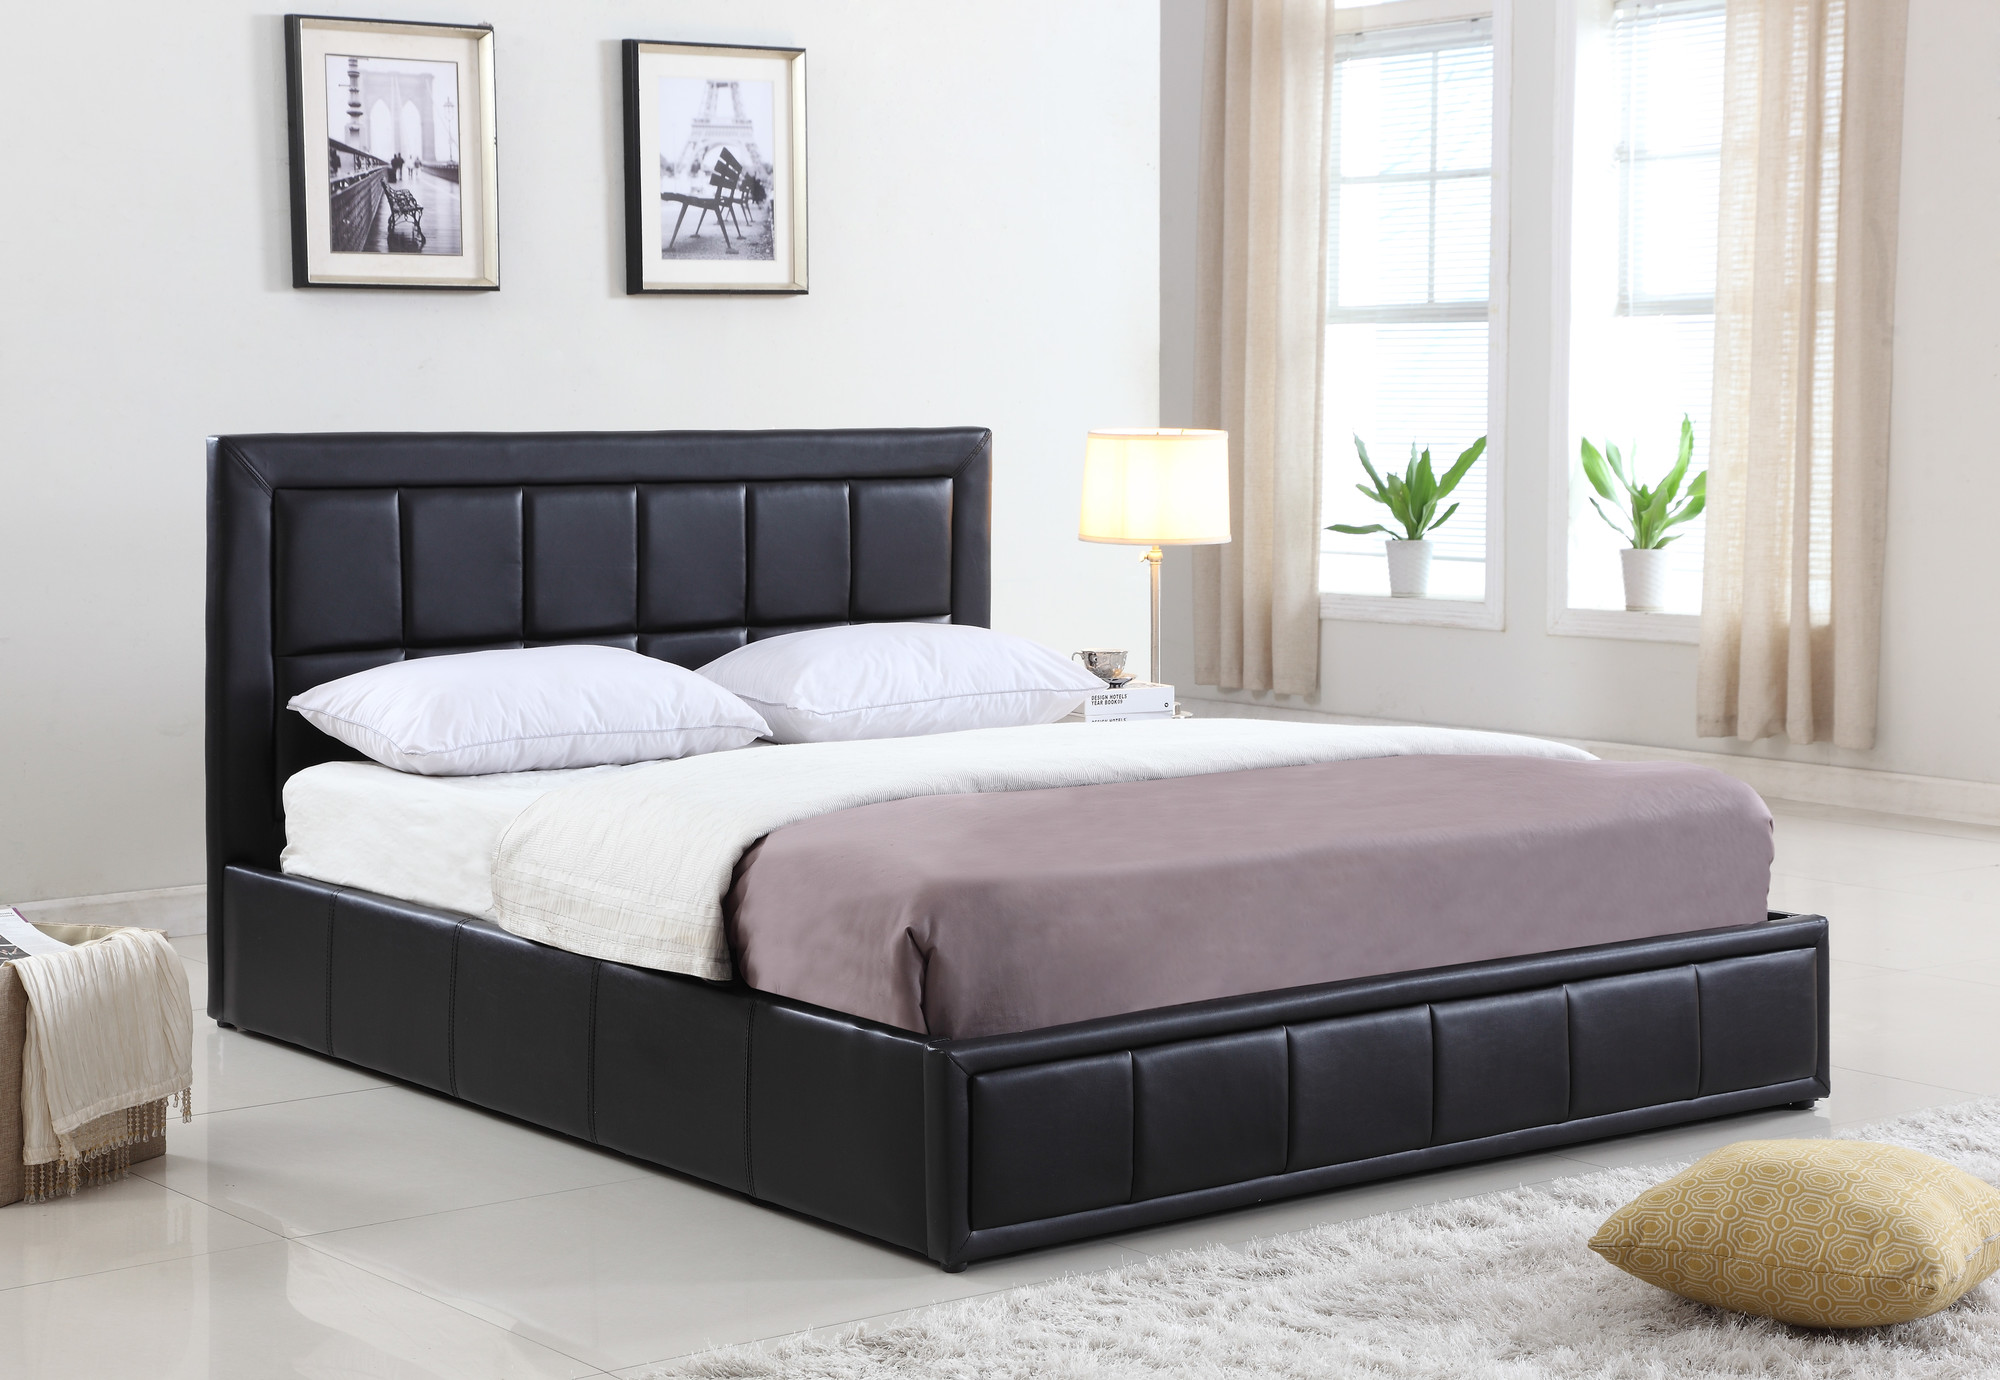 VIC Furniture Atticus PU Leather Queen Gas Lift Storage Bed